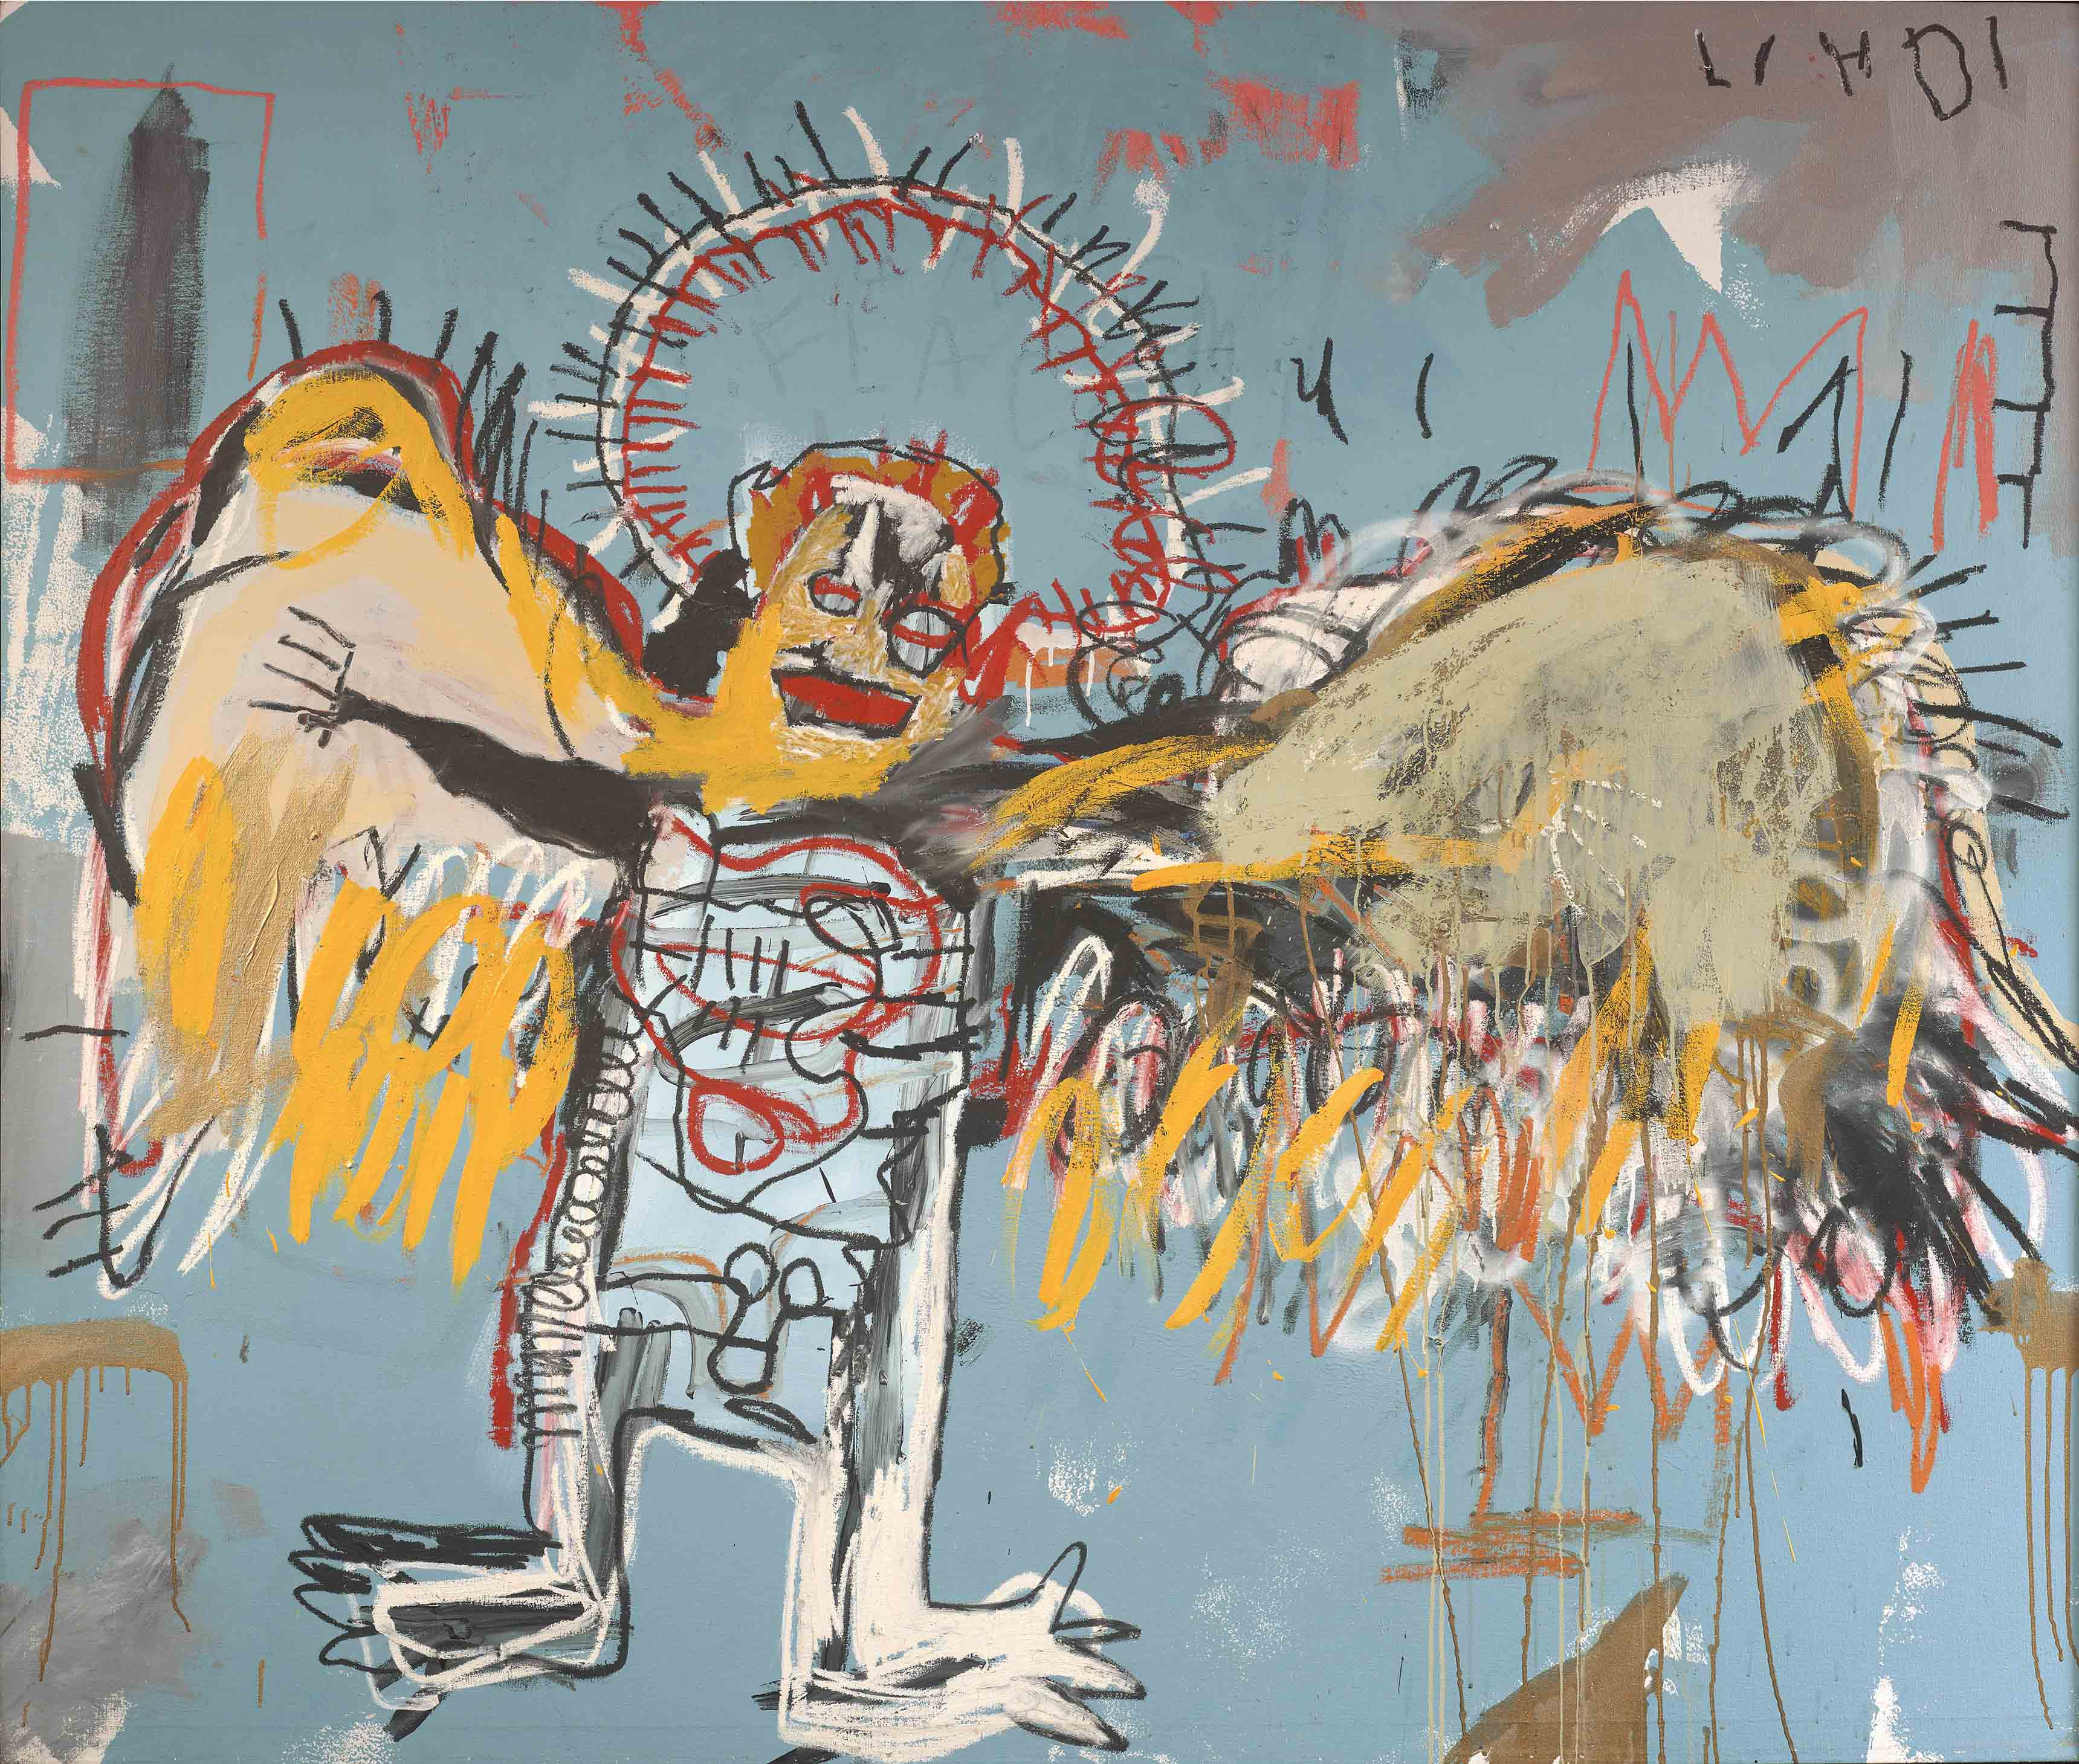 Fallen Angel, Jean-Michel Basquiat (1981)